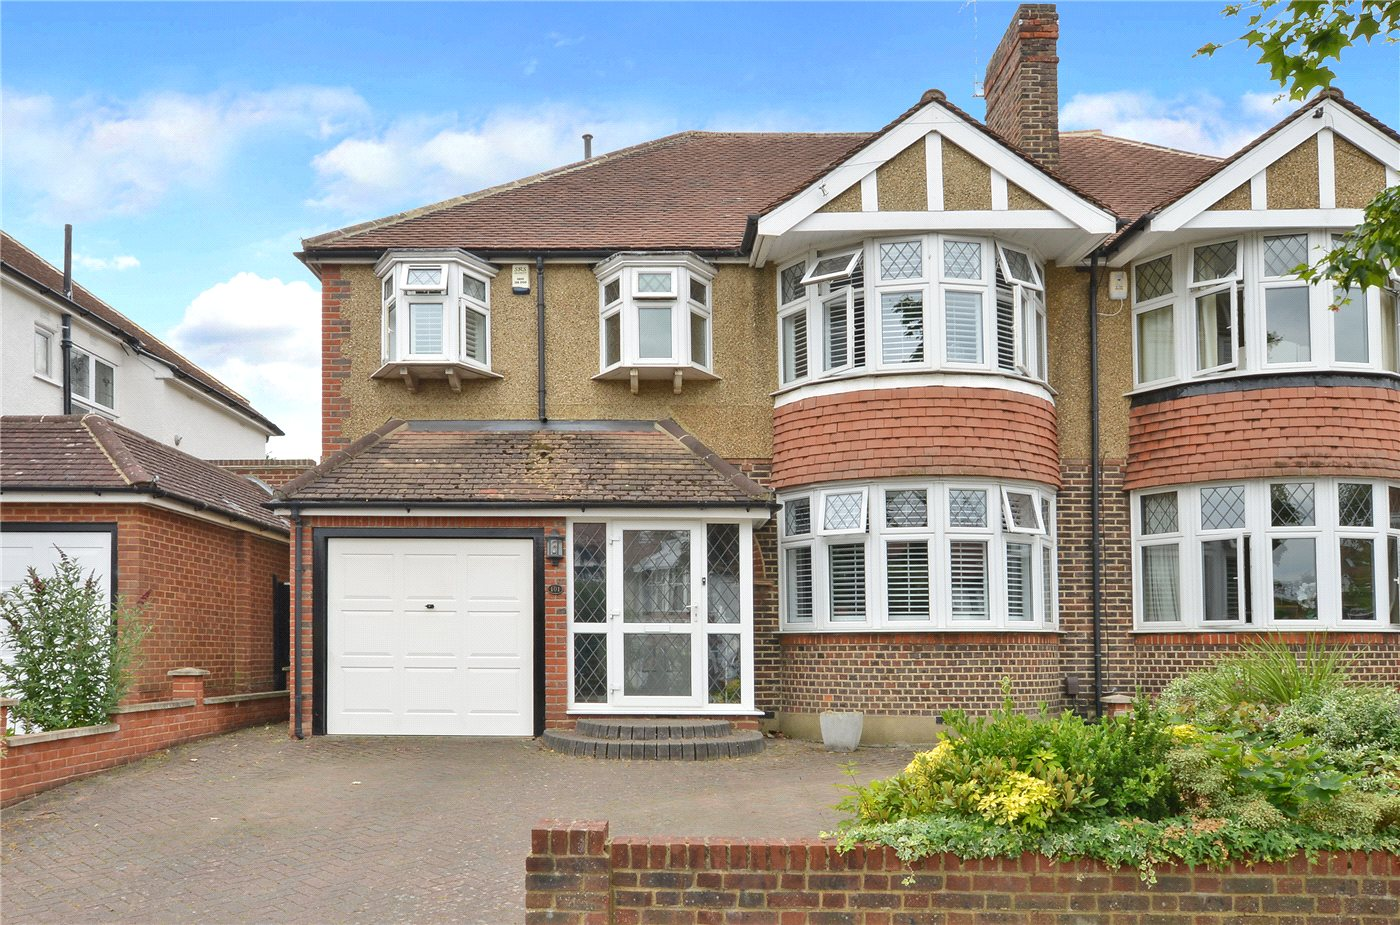 5 Bedrooms Semi Detached House for sale in The Manor Drive, Worcester Park, KT4